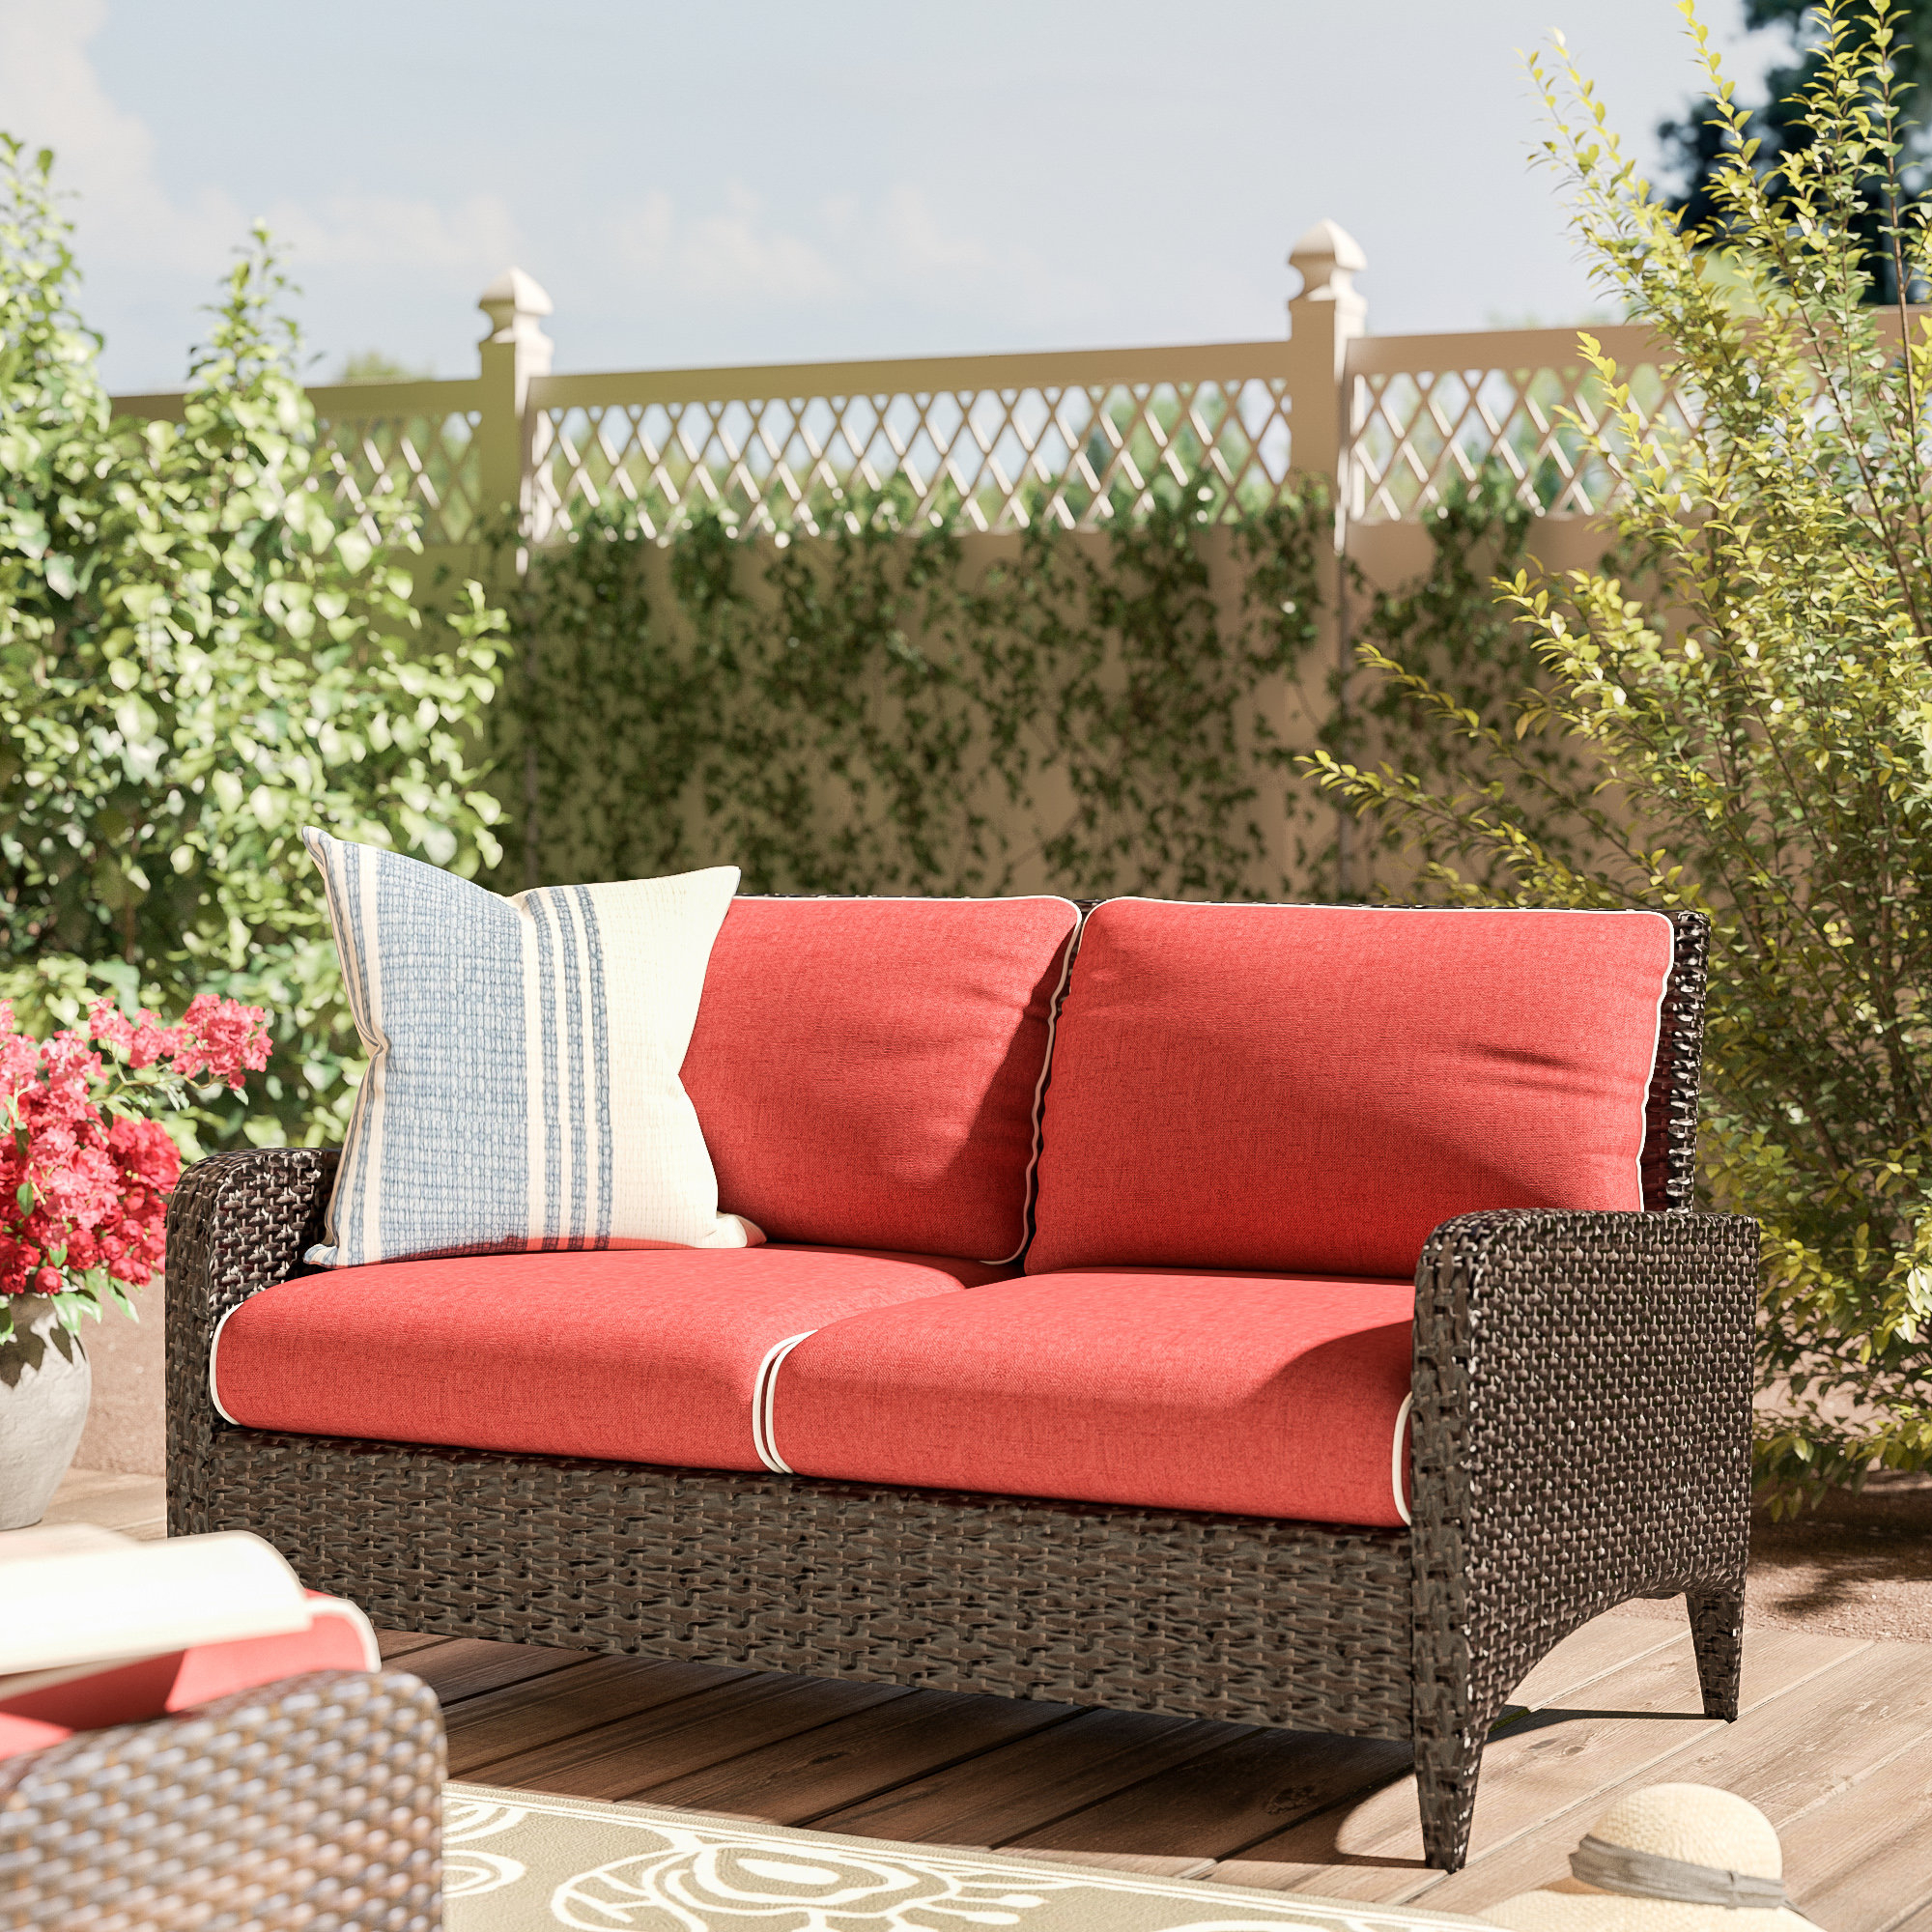 World Menagerie Mosca Patio Loveseat With Cushions & Reviews Regarding Latest Englewood Loveseats With Cushions (View 20 of 20)